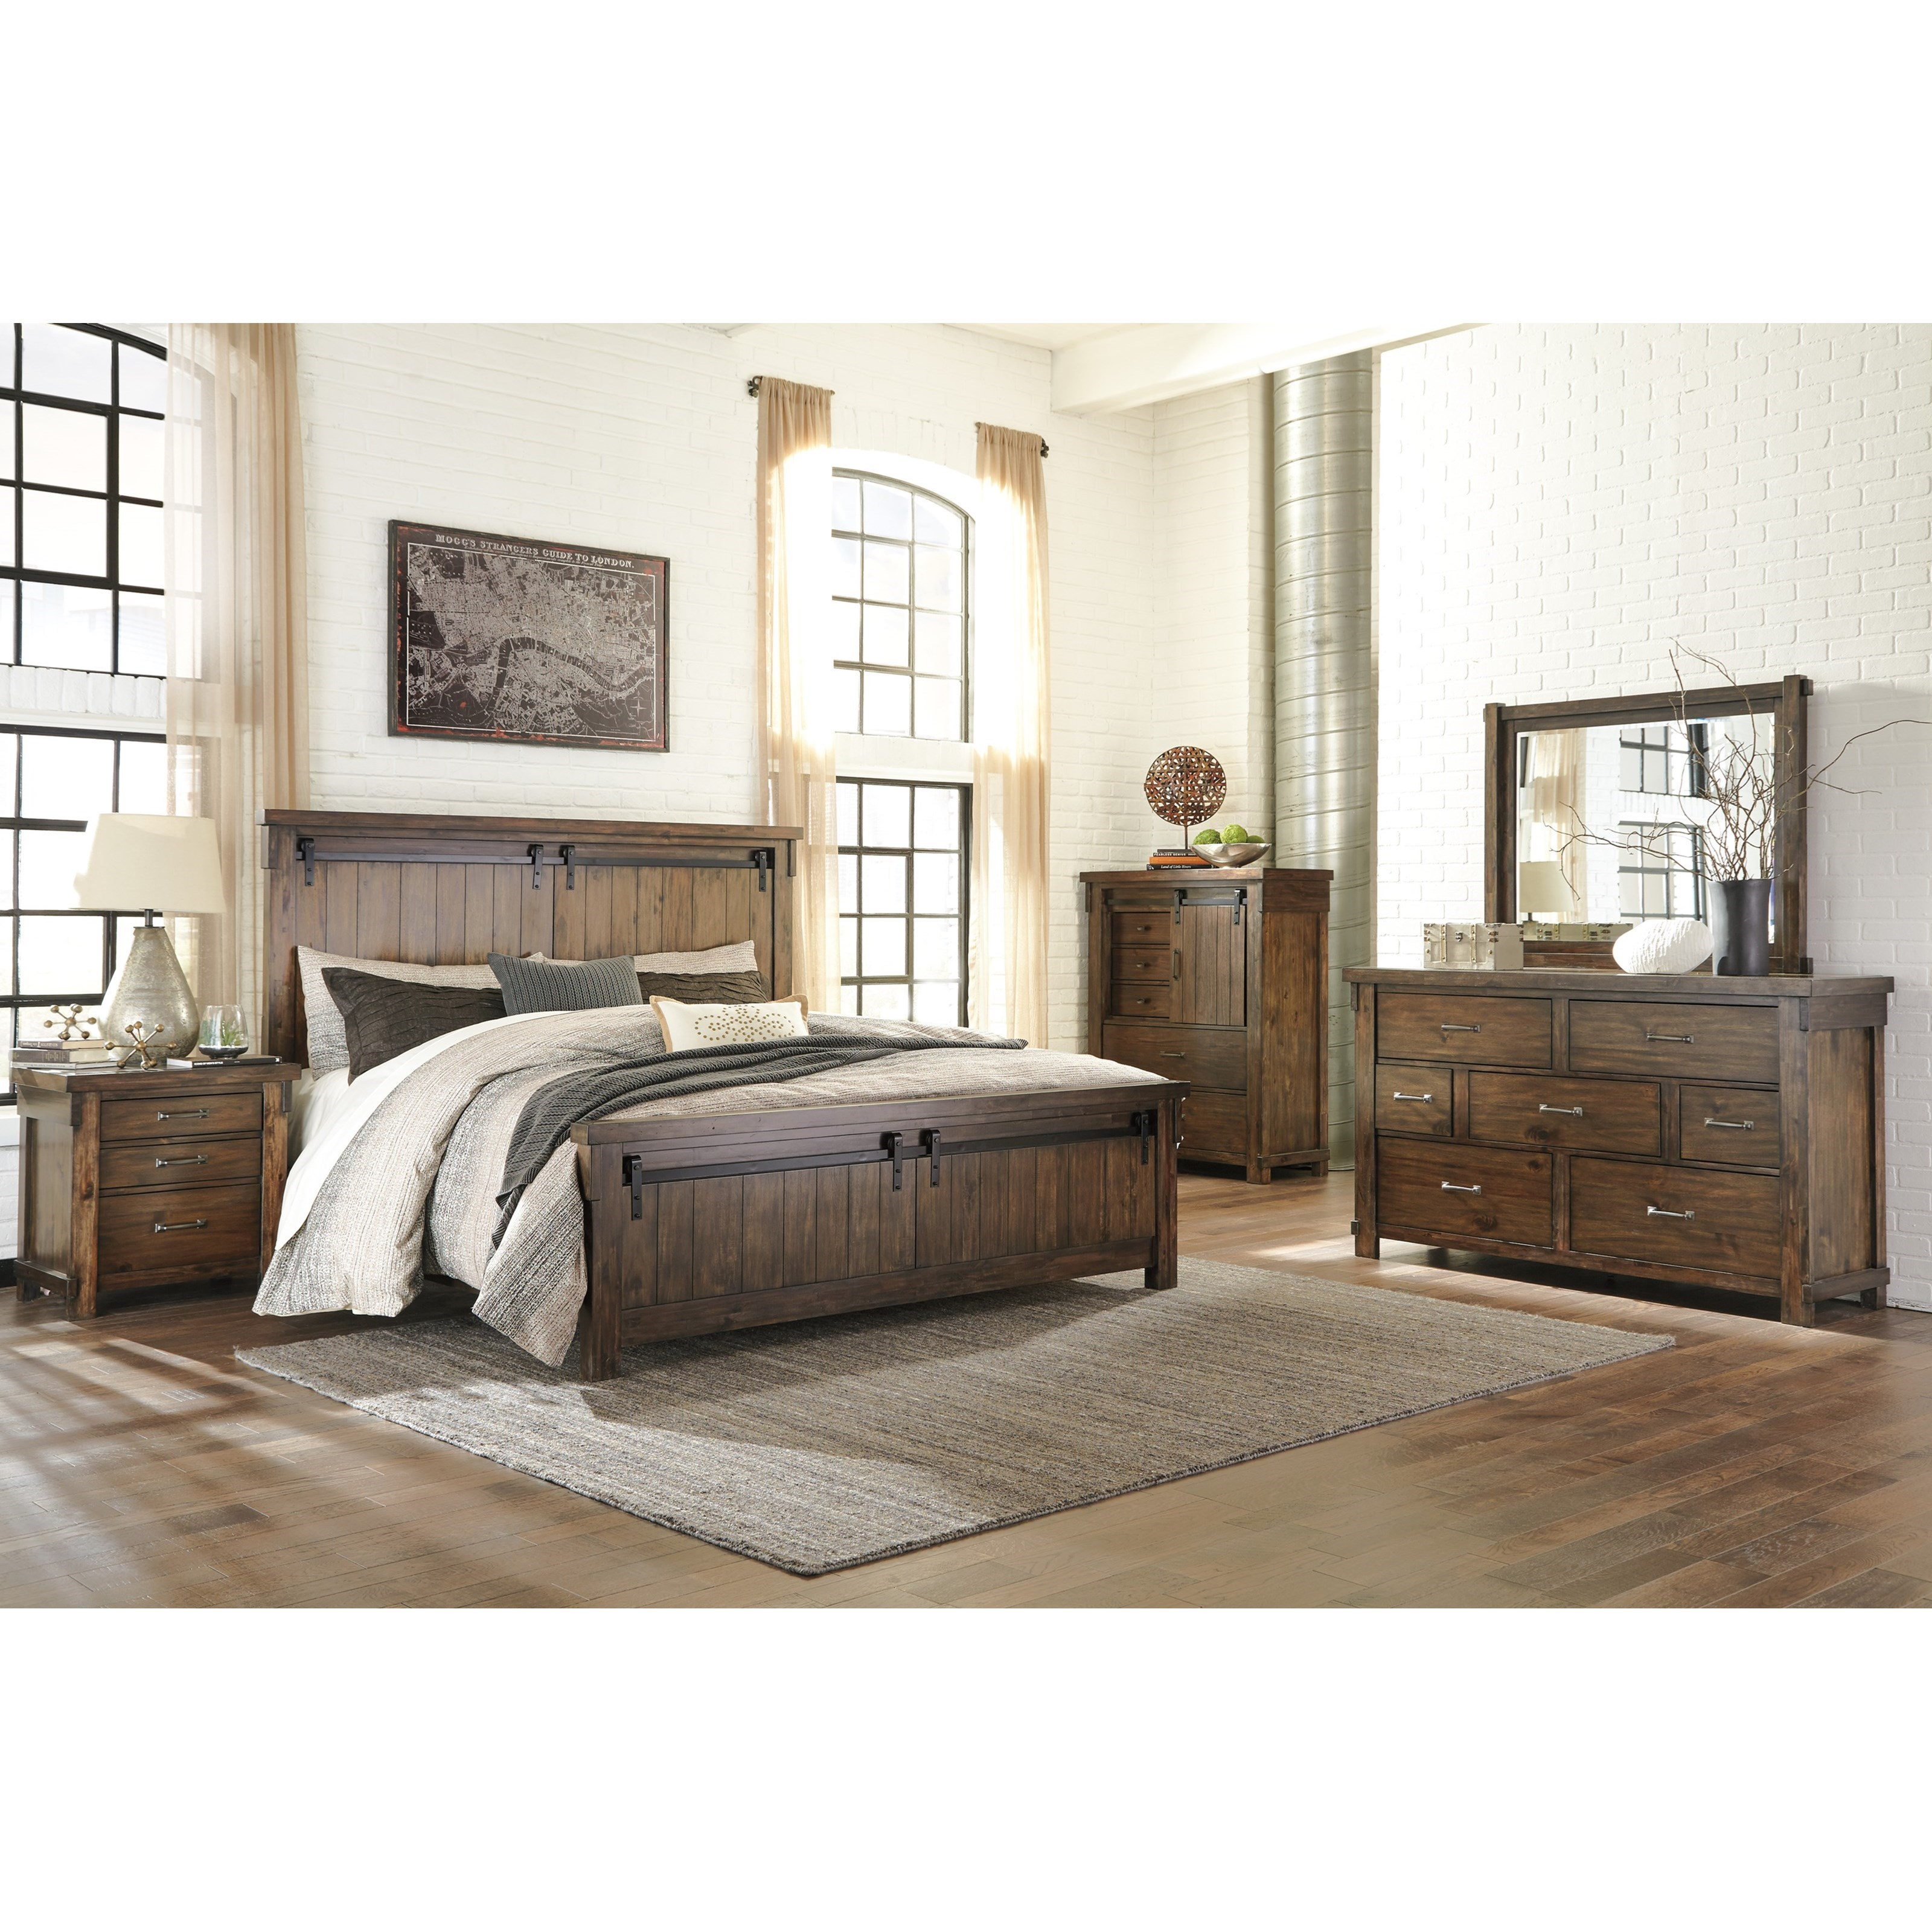 Lakeleigh Queen Bedroom Group by Signature Design by Ashley at Zak's Warehouse Clearance Center